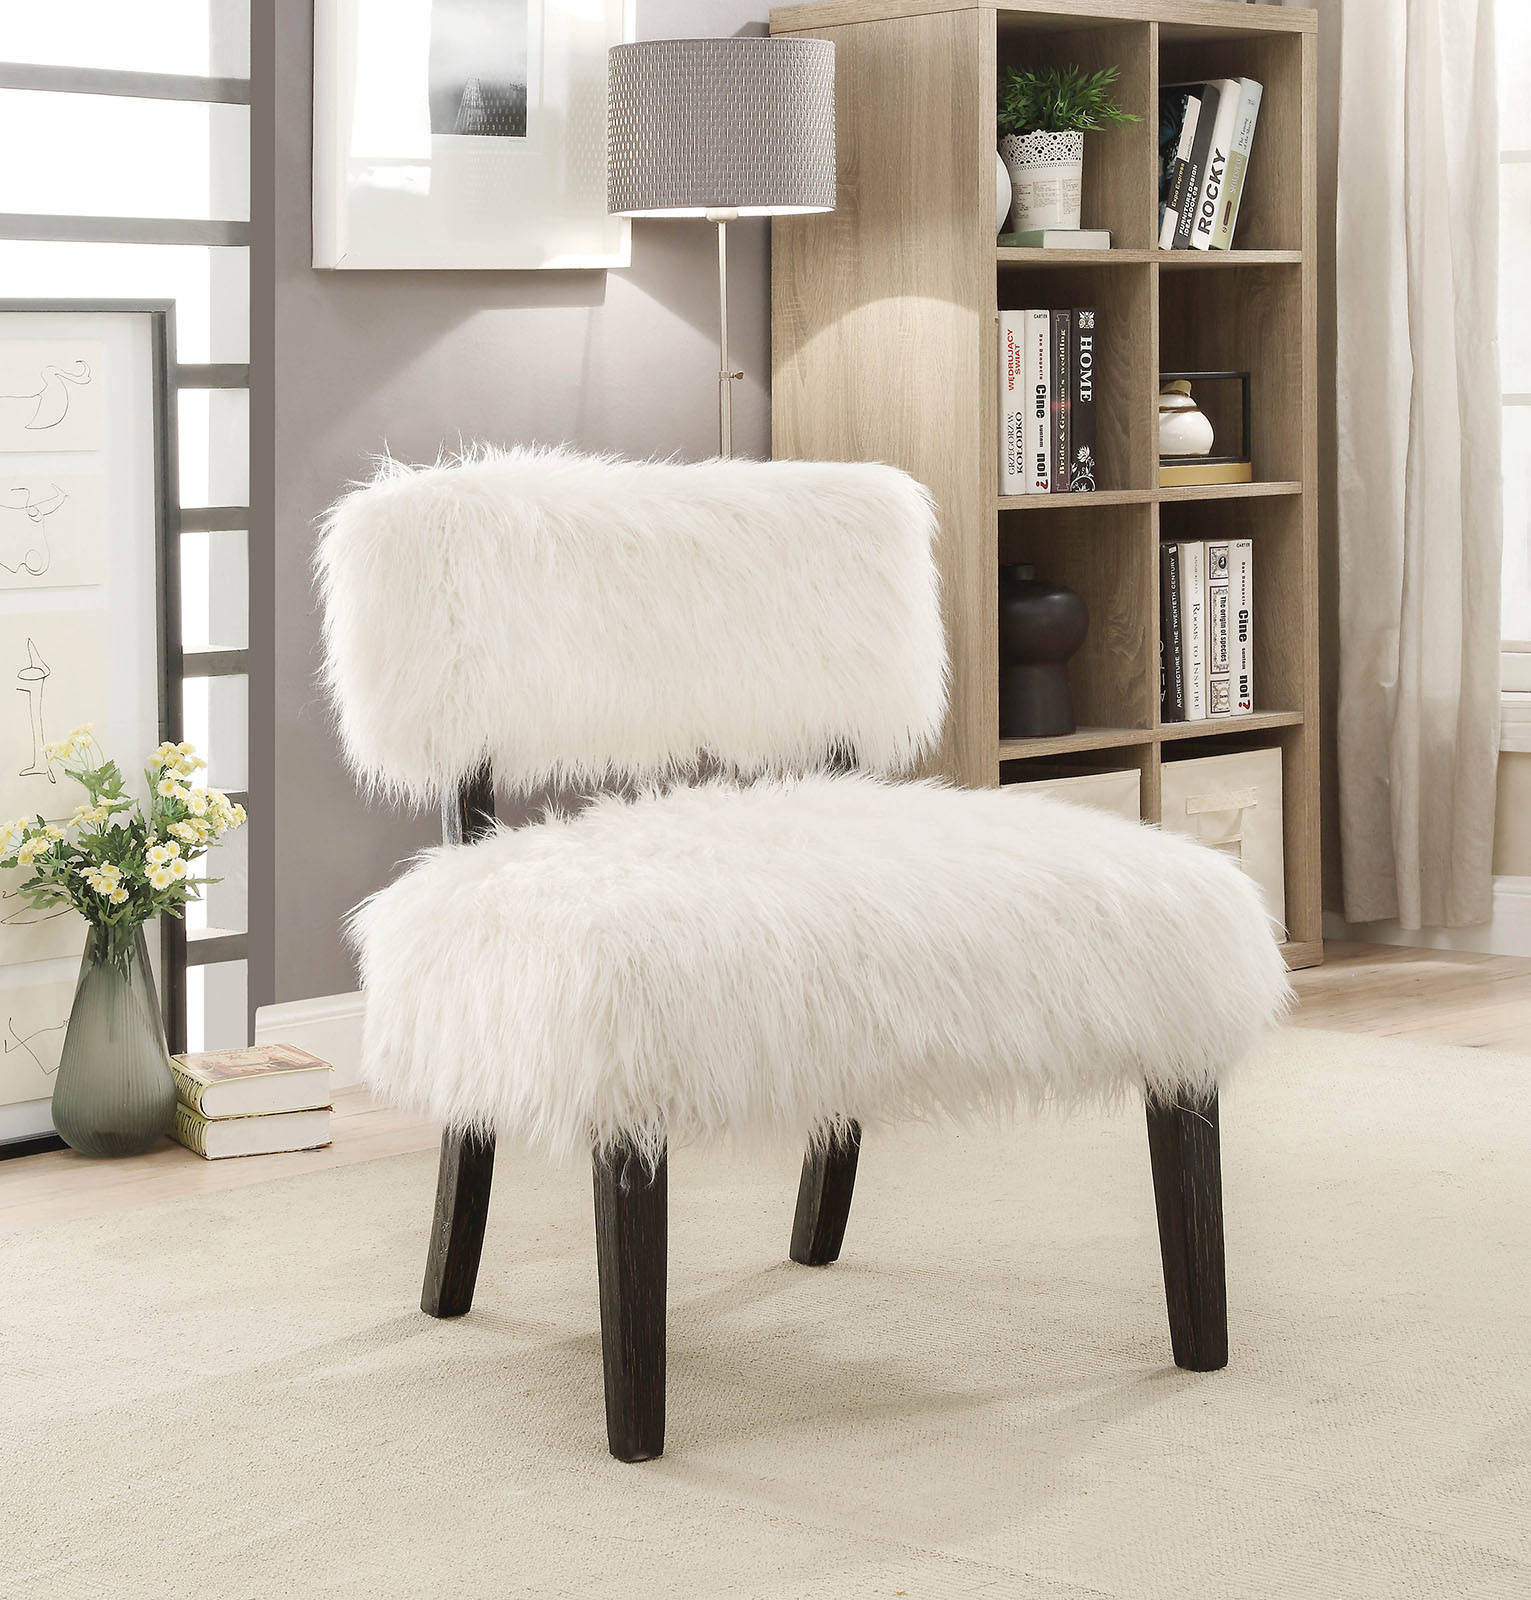 Tremendous Furniture Of America Pardeep White Accent Chair Camellatalisay Diy Chair Ideas Camellatalisaycom